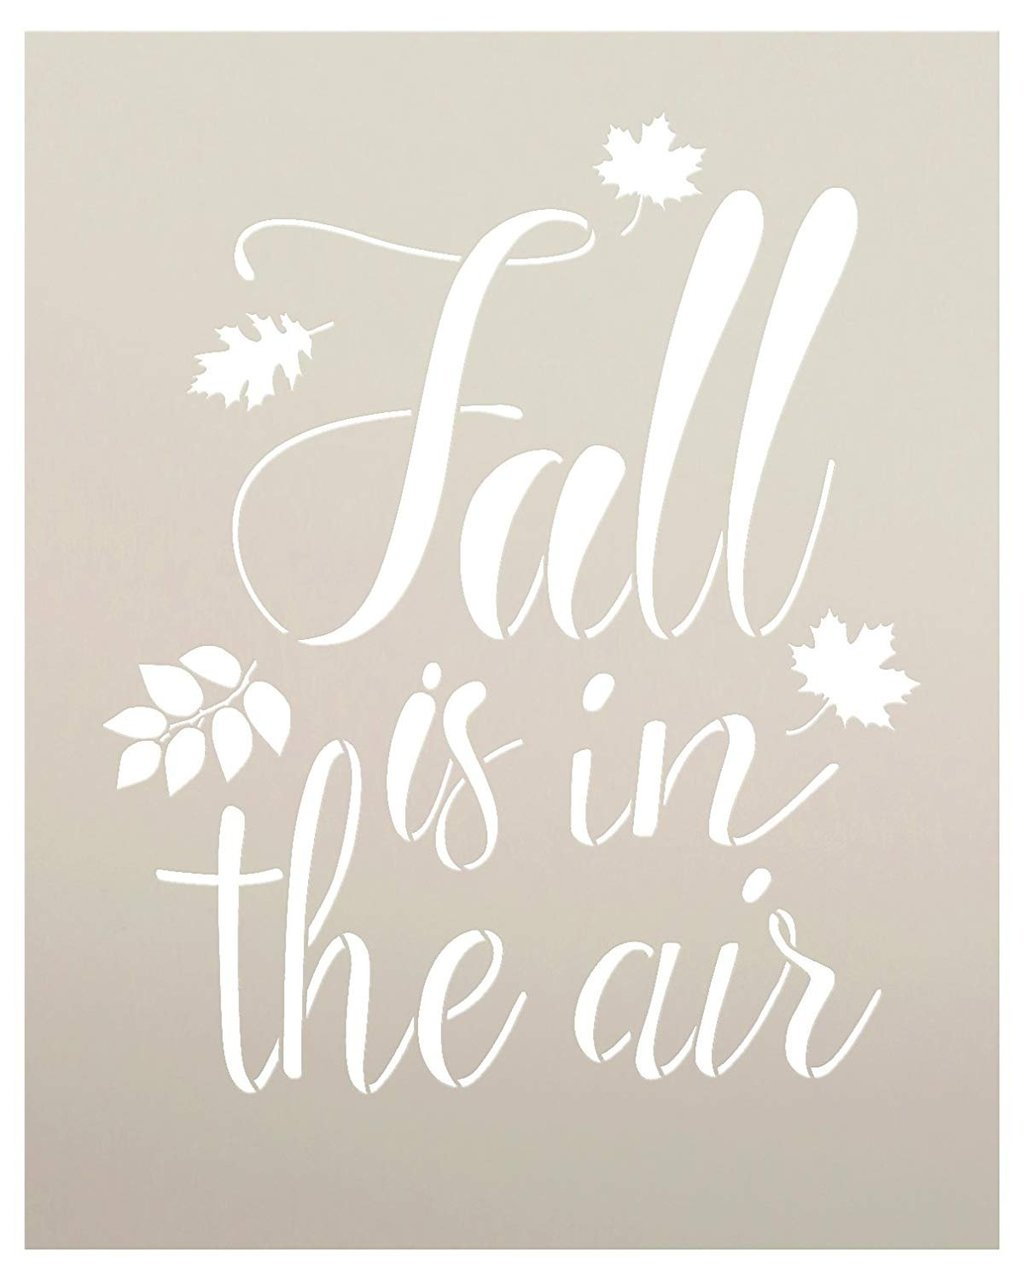 Fall is in The Air Stencil by StudioR12 | Script Letters | Reusable Word Template for Painting on Wood | DIY Home Decor Sign | Fall Leaves Autumn |Chalk, Mixed Media and Craft |Select Size